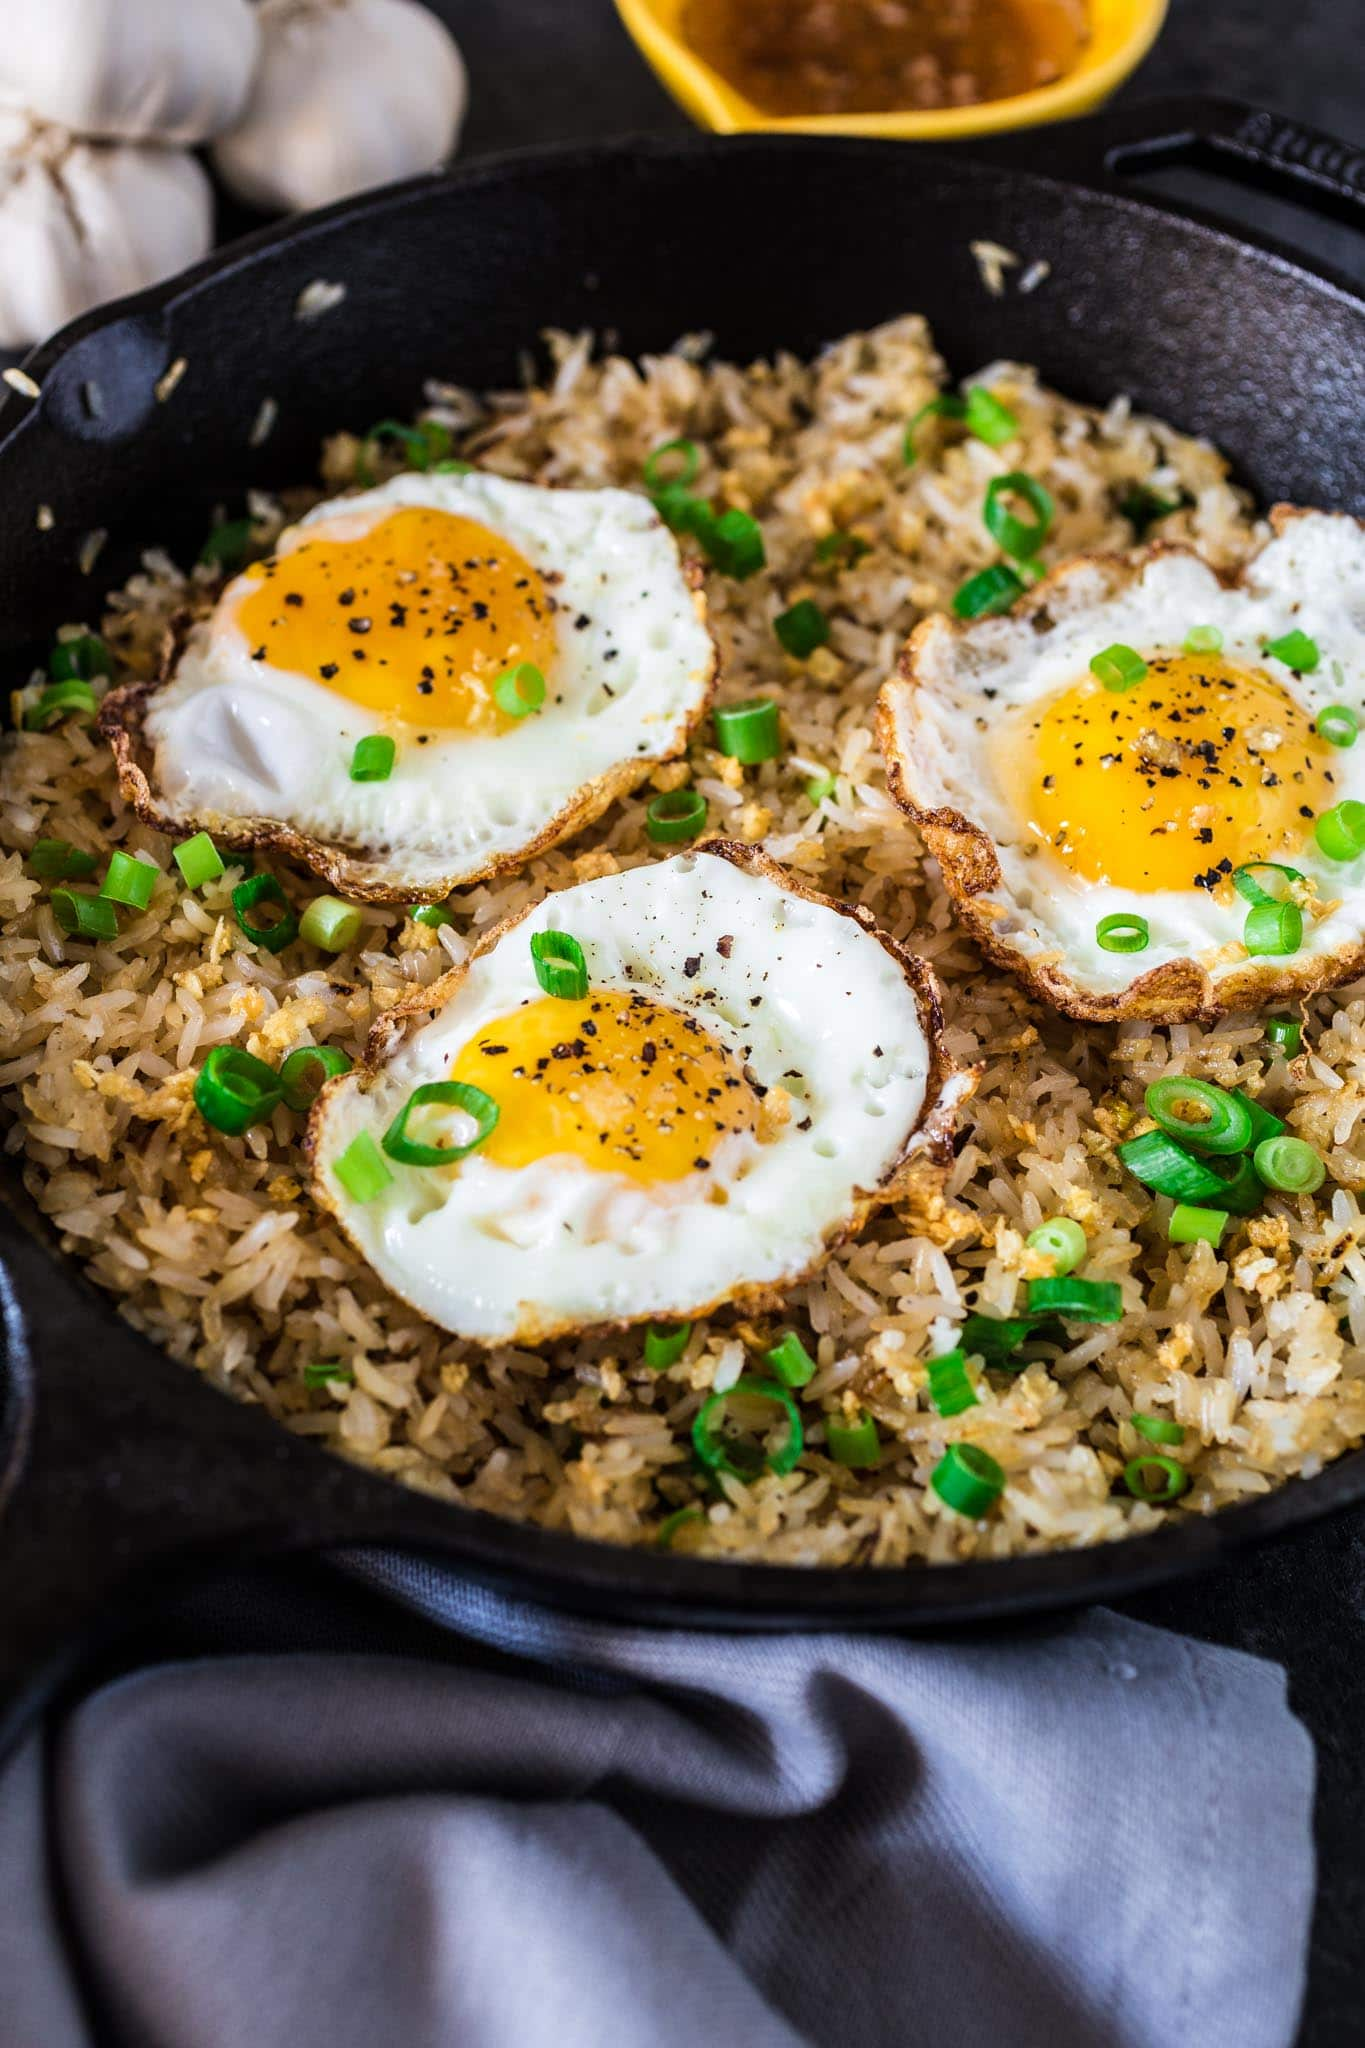 Filipino Garlic Fried Rice | www.oliviascuisine.com | Sinangag, or Garlic Fried Rice, is a popular Filipino breakfast, often served with a fried egg on top and a drizzle of vinegar sauce. Don't have a stomach for rice and garlic in the morning? No problem! This dish is also amazing for lunch or as a side for dinner.